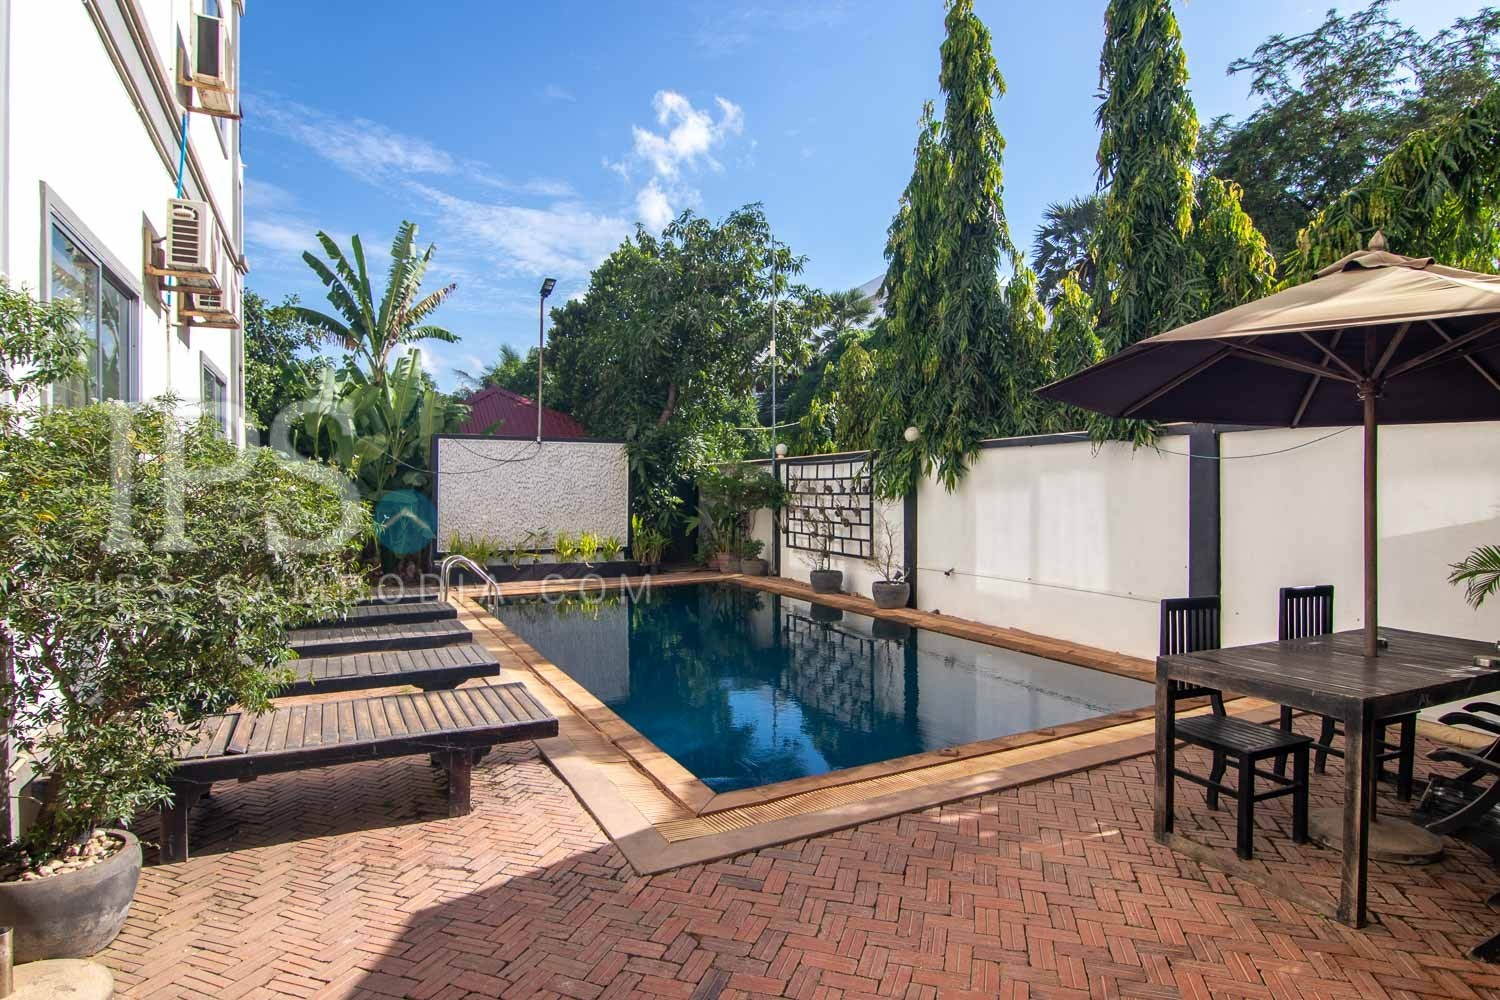 25 Bedroom Boutique Hotel For Rent - Night Market Area, Siem Reap